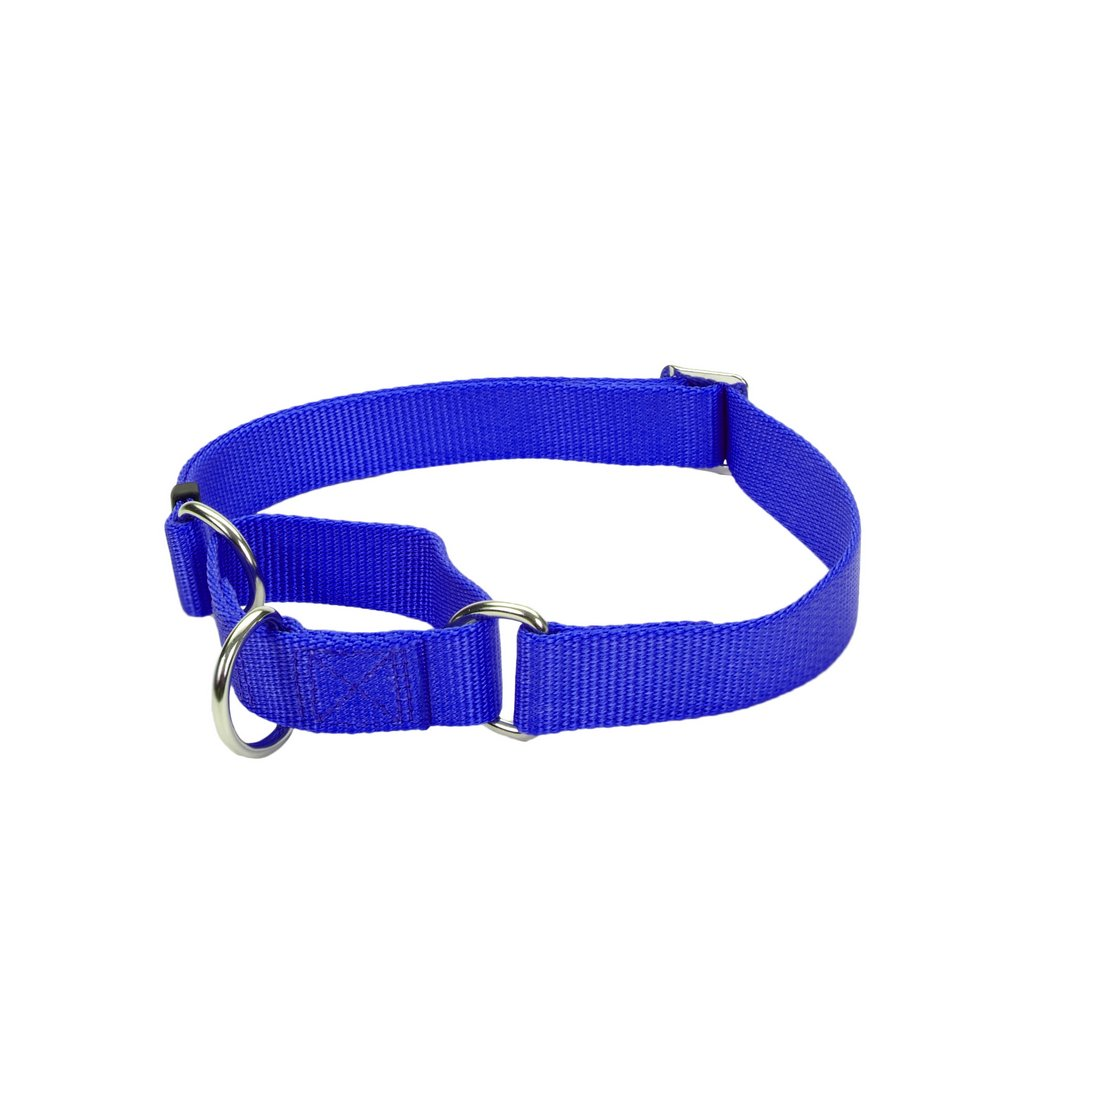 hf-collar-martingale-collar-blue